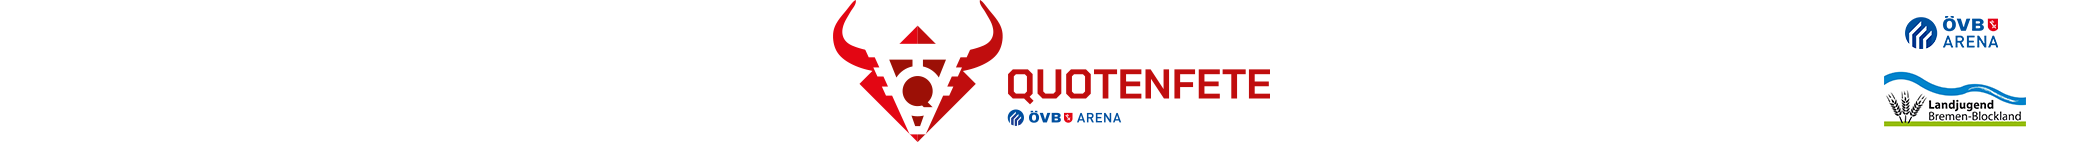 logo_header_quotenfete_ohne-sponsor